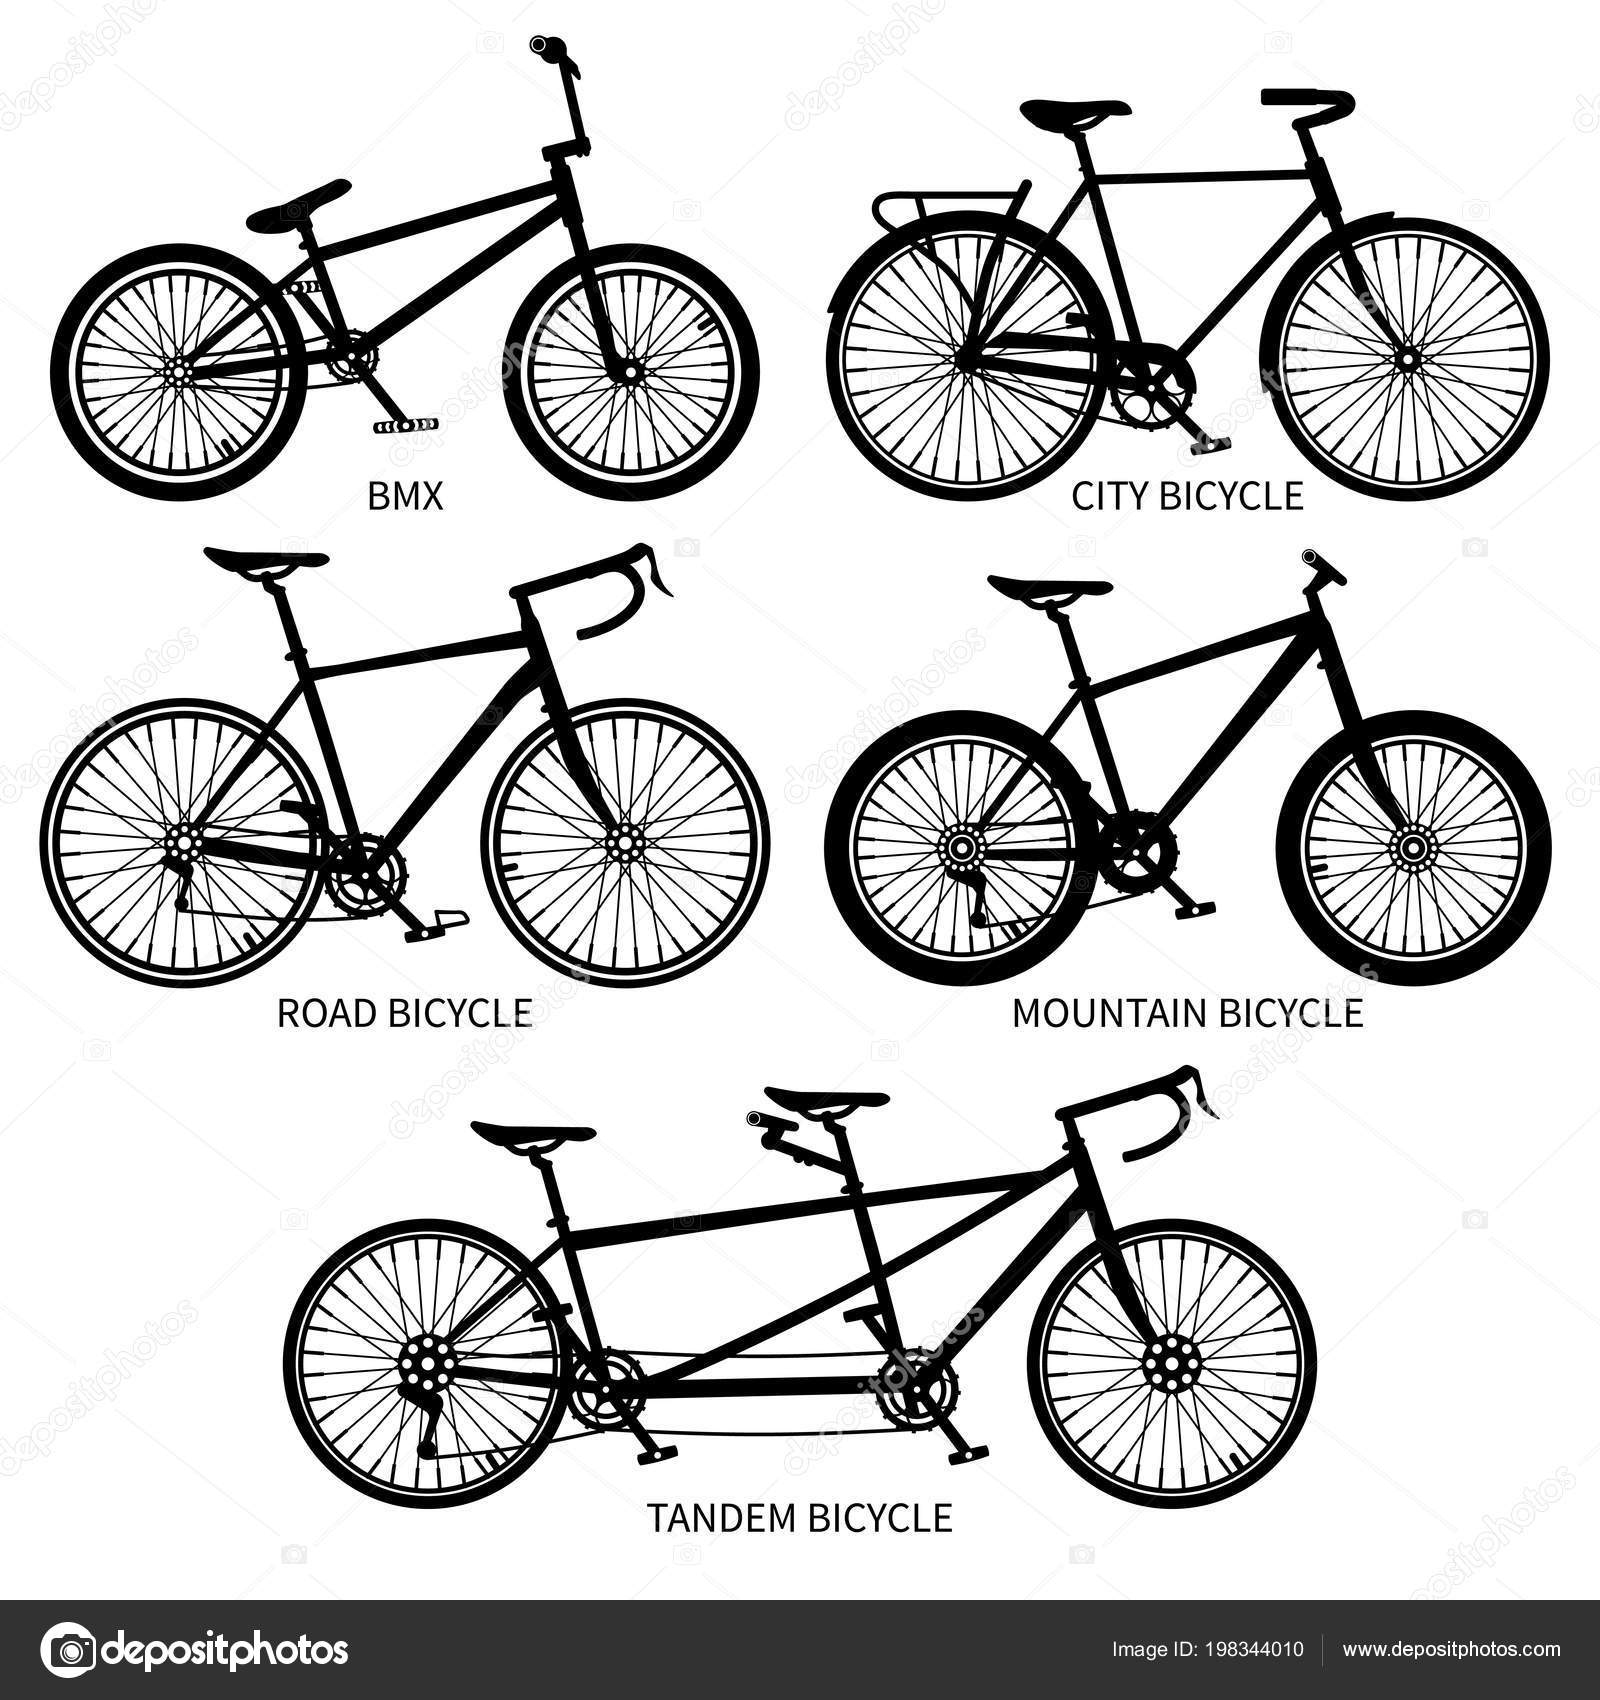 360754aa82b Bike types vector black silhouettes. Road, mountain, tandem bicycles  isolated. Set of bicycle vintage, sport transport with pedal illustration —  Vector by ...